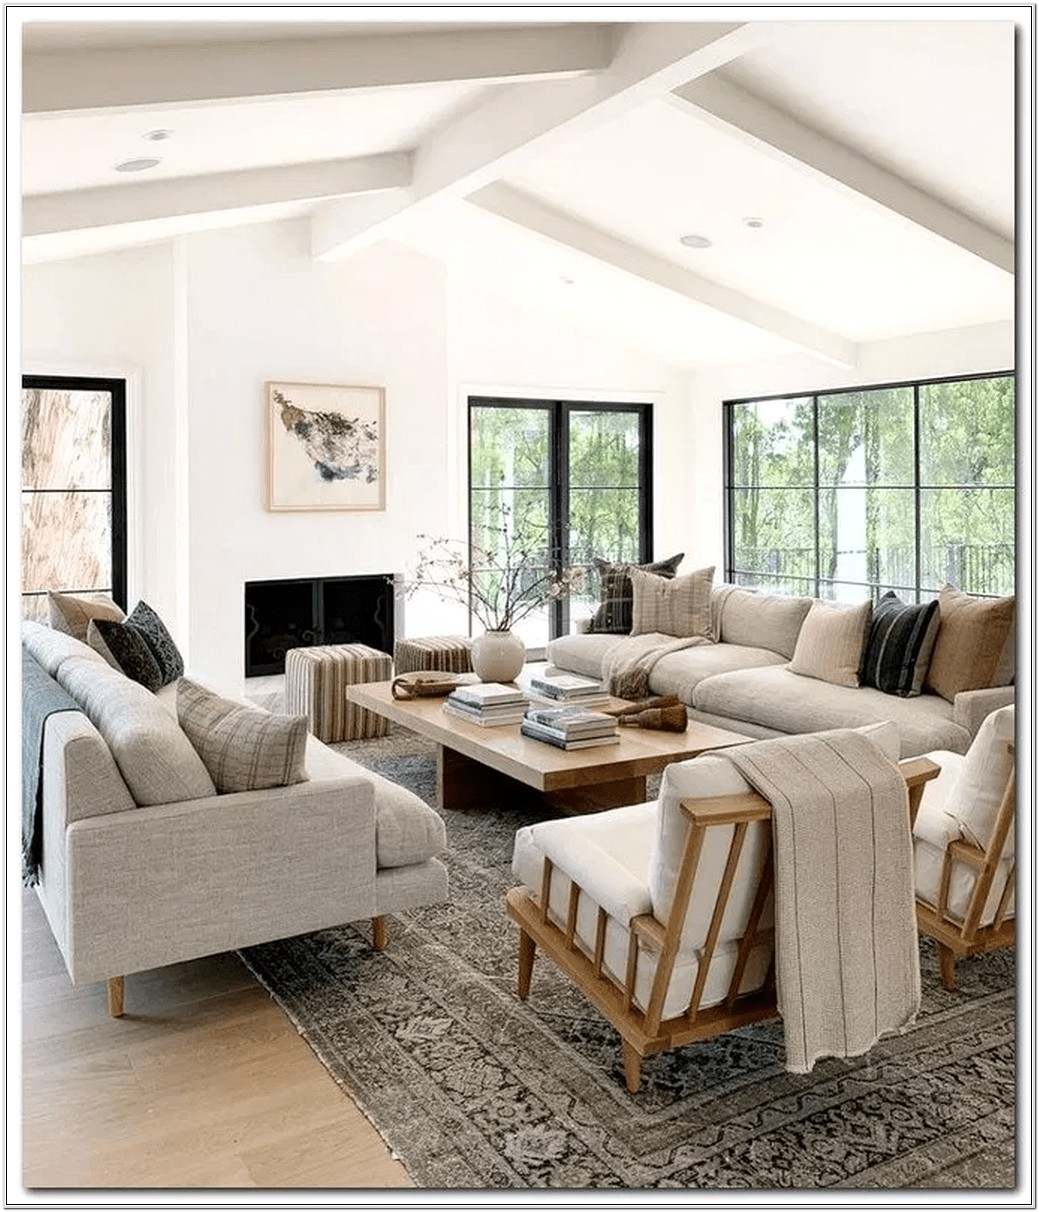 Decor Ideas For Neutral Living Room